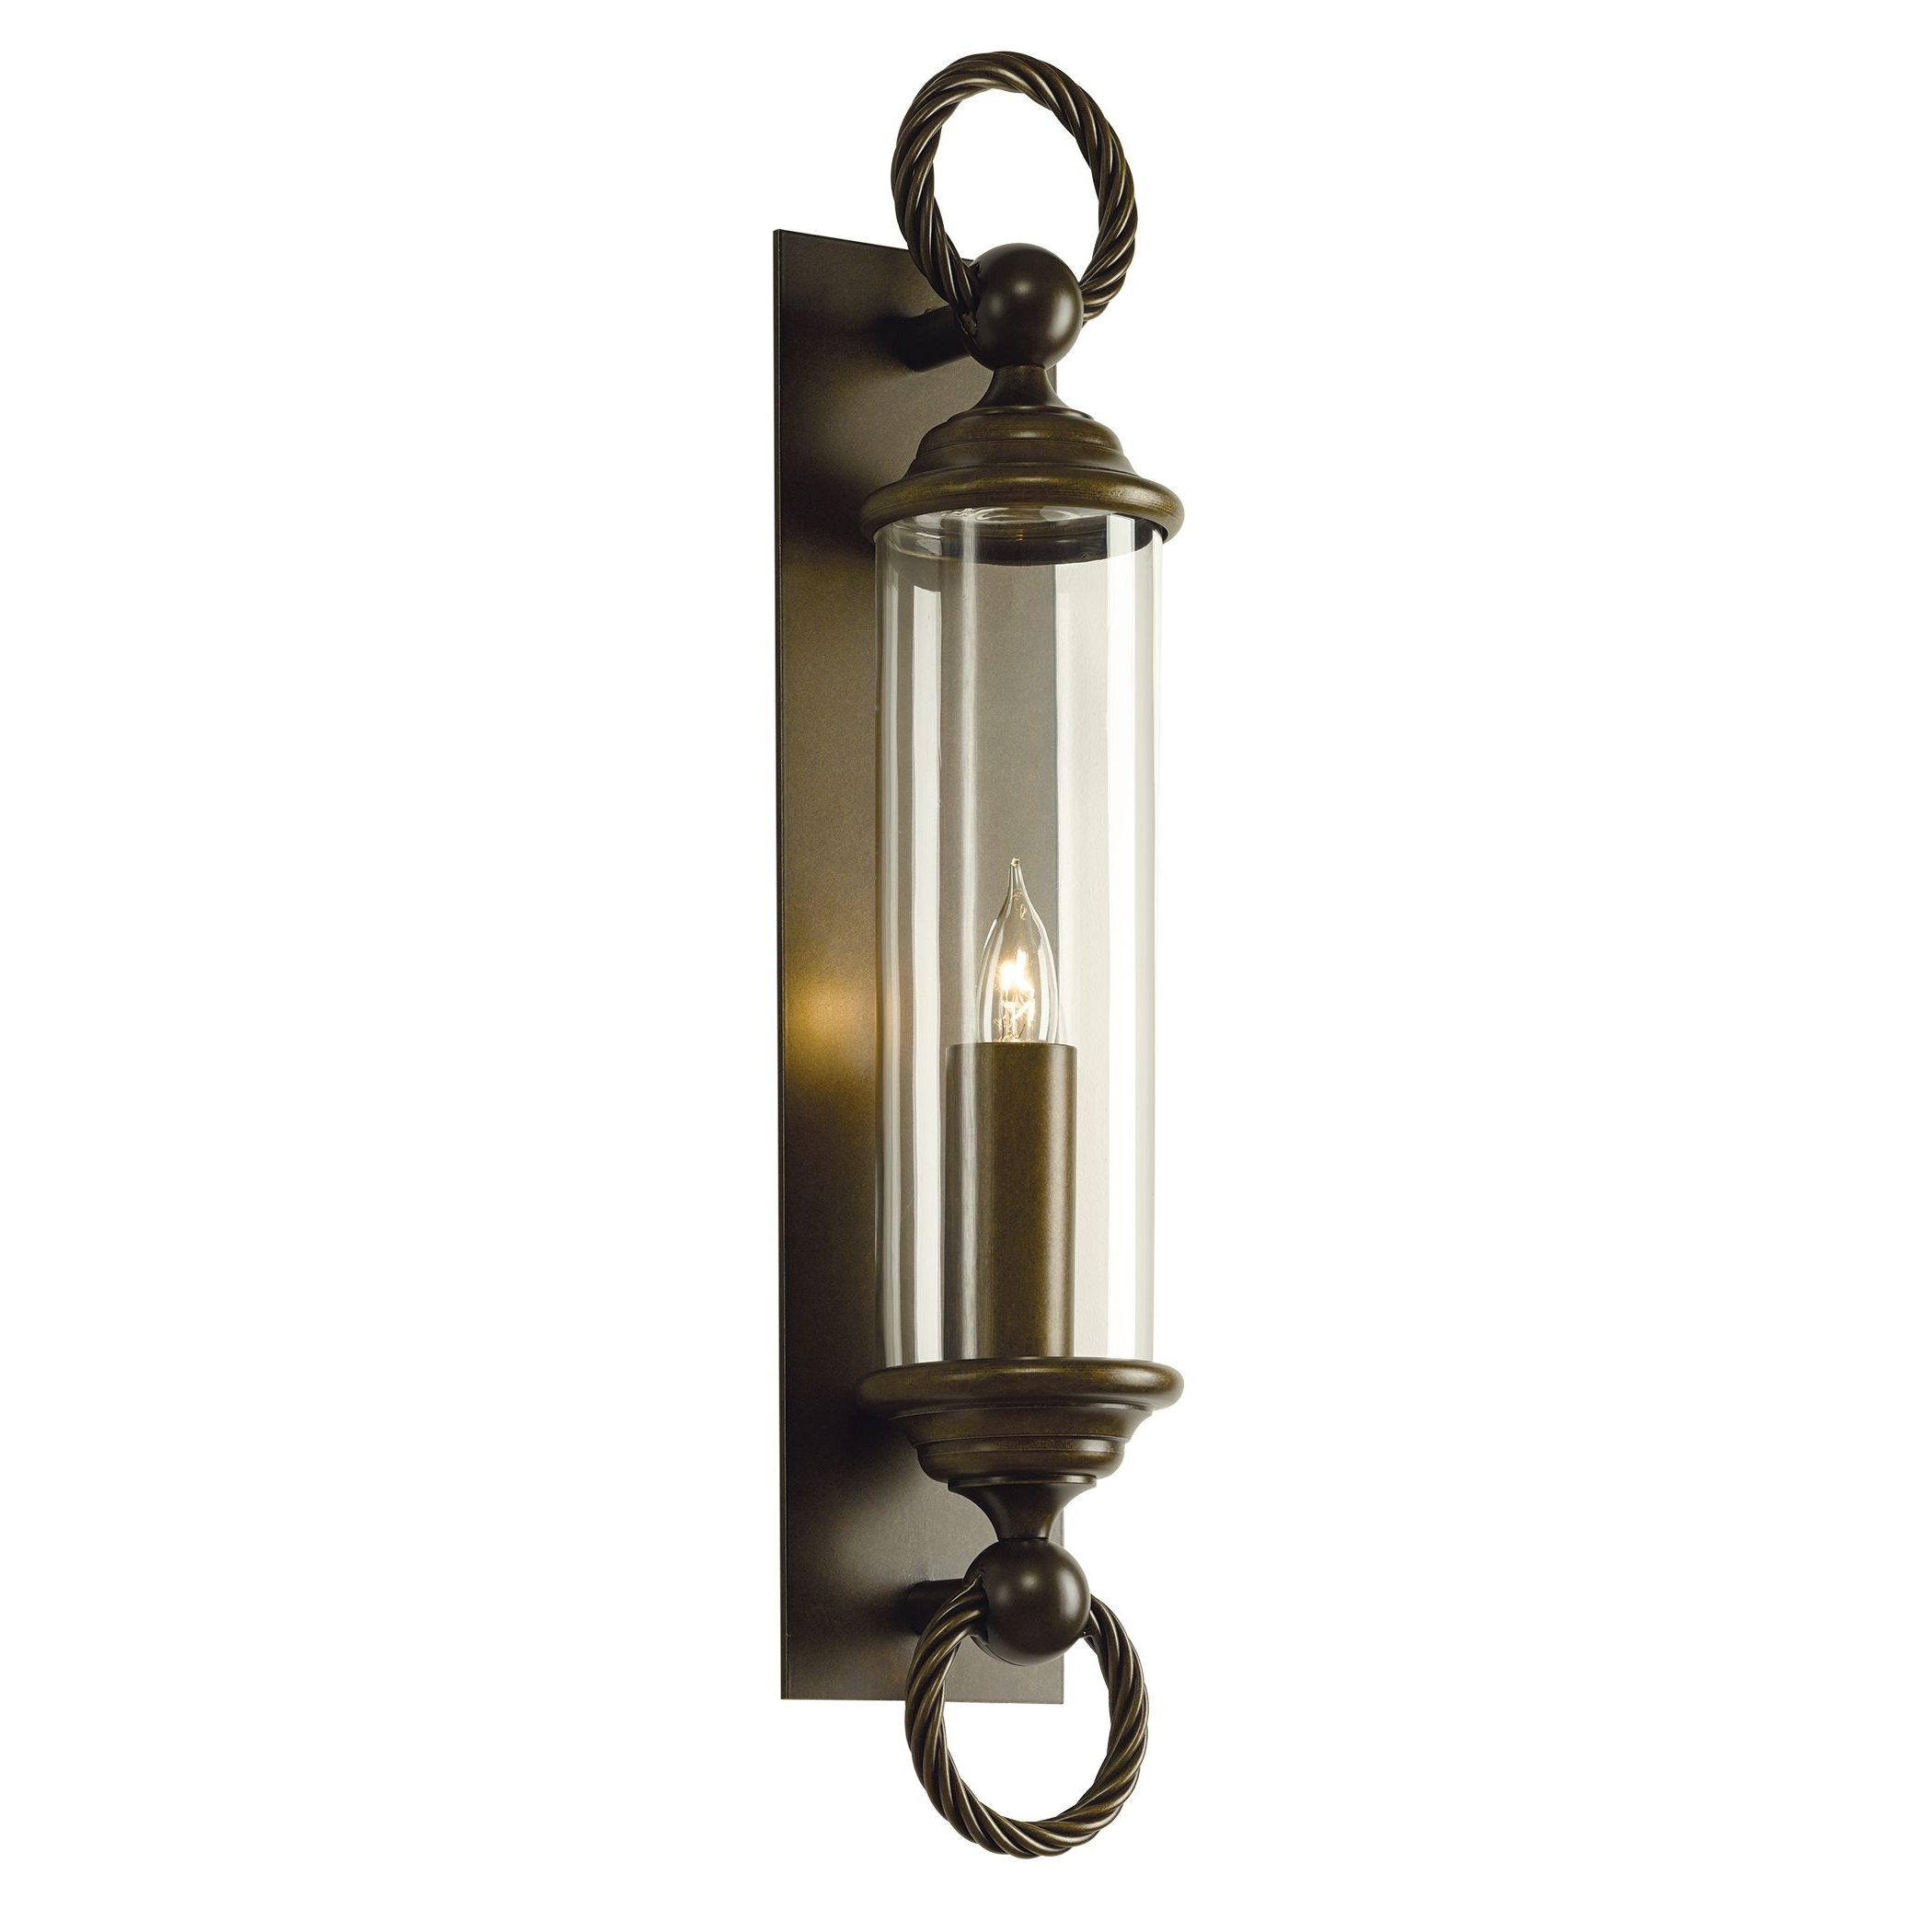 Trendy Large Outdoor Wall Light Fixtures With Regard To Cavo Large Outdoor Wall Sconce – Hubbardton Forge (View 4 of 20)